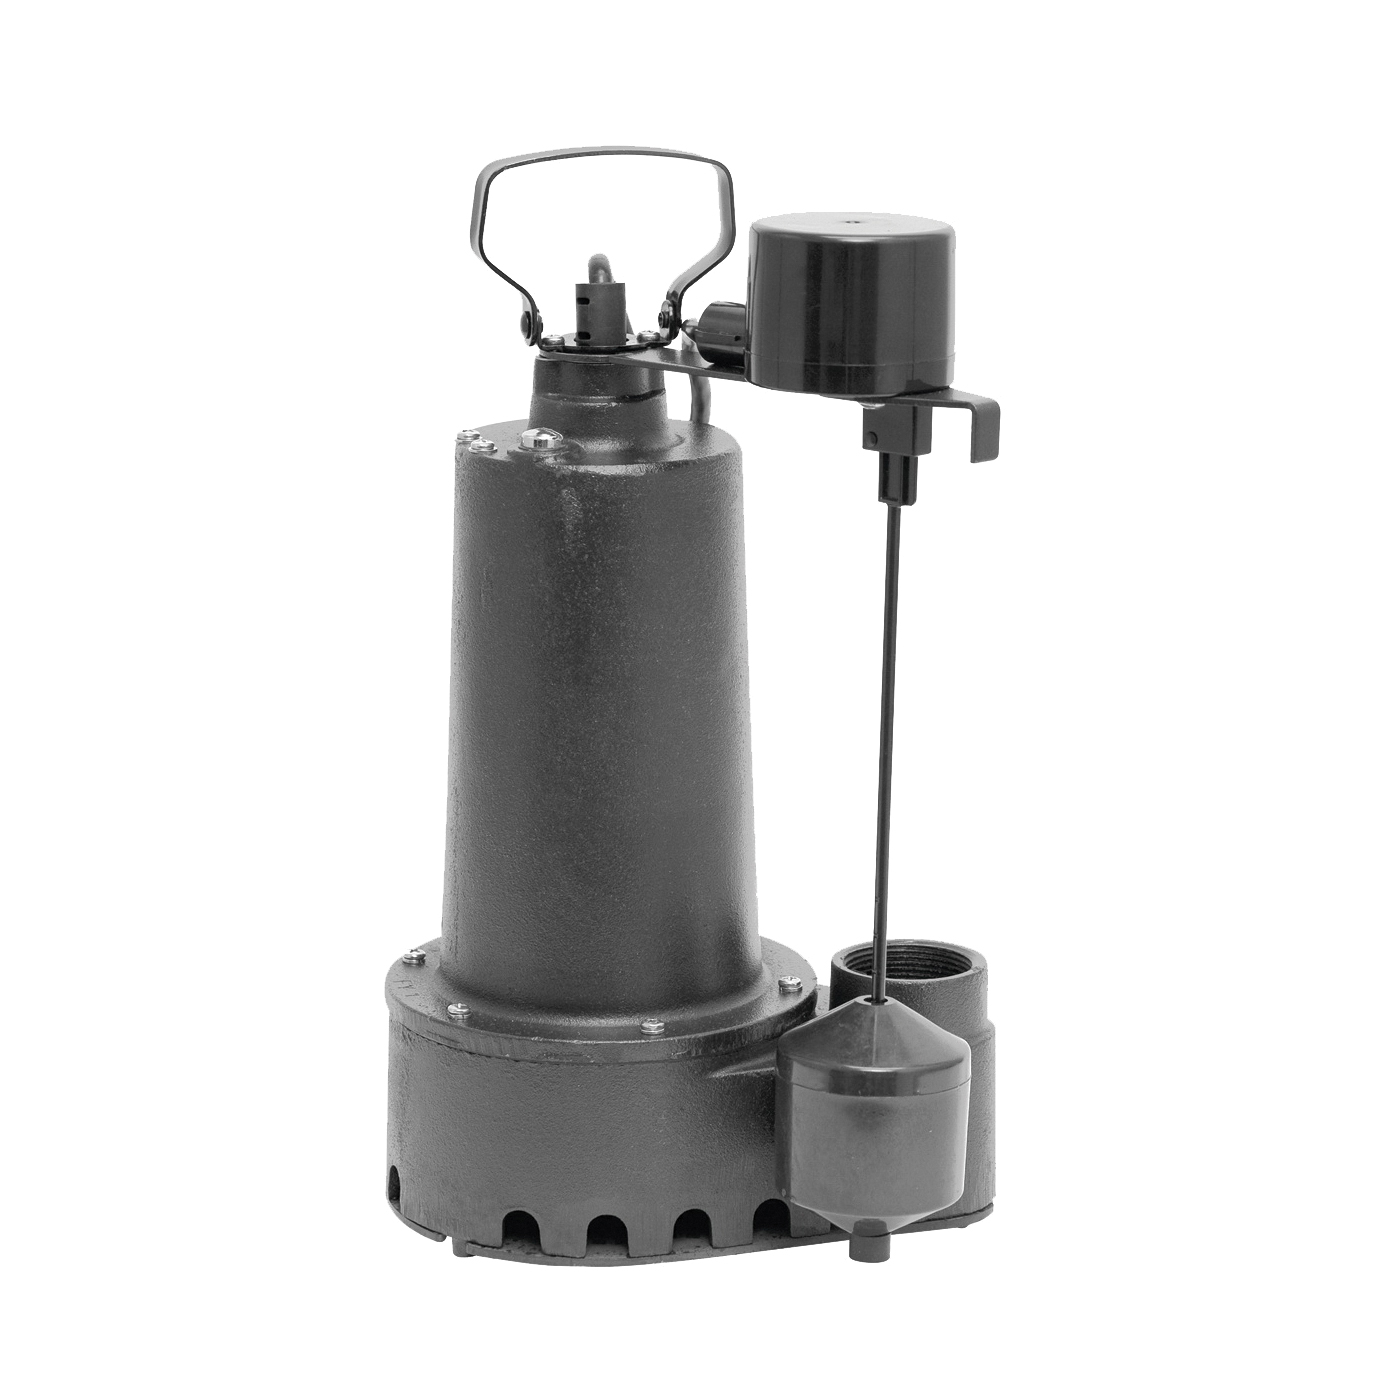 Picture of SUPERIOR PUMP 92352 Sump Pump, 7.6 A, 120 V, 0.33 hp, 1-1/2 in Outlet, 60 gpm, Iron